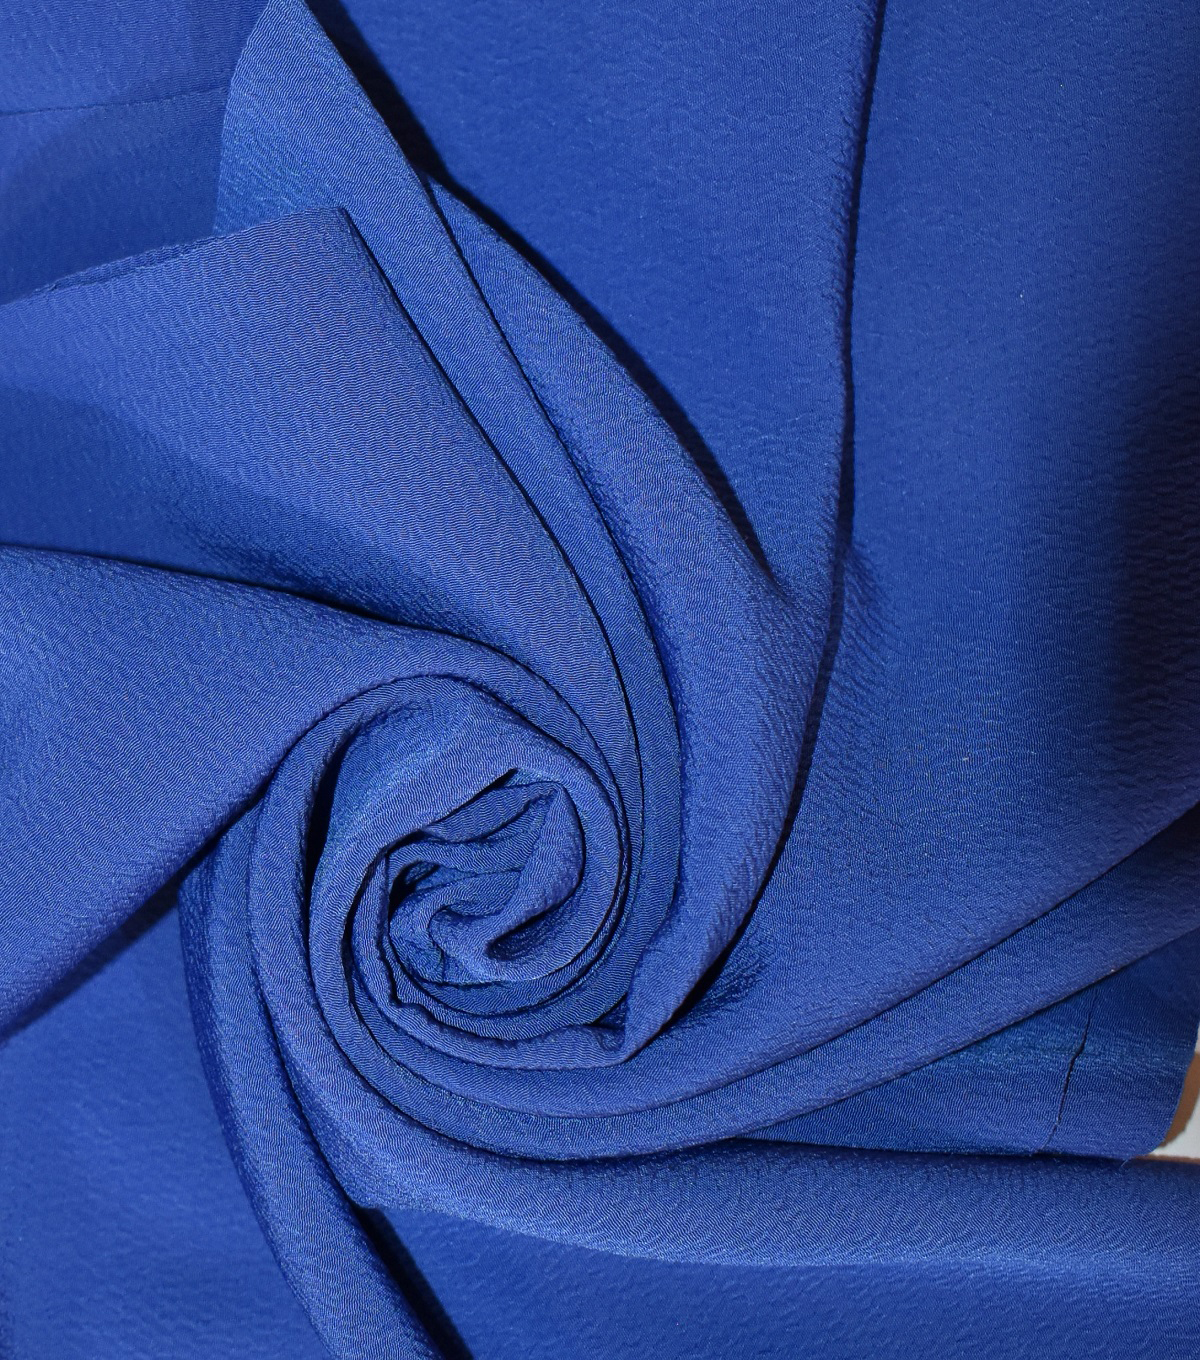 Silky Solids Textured Polyester Crepe Fabric-Solids, Sodalite Blue